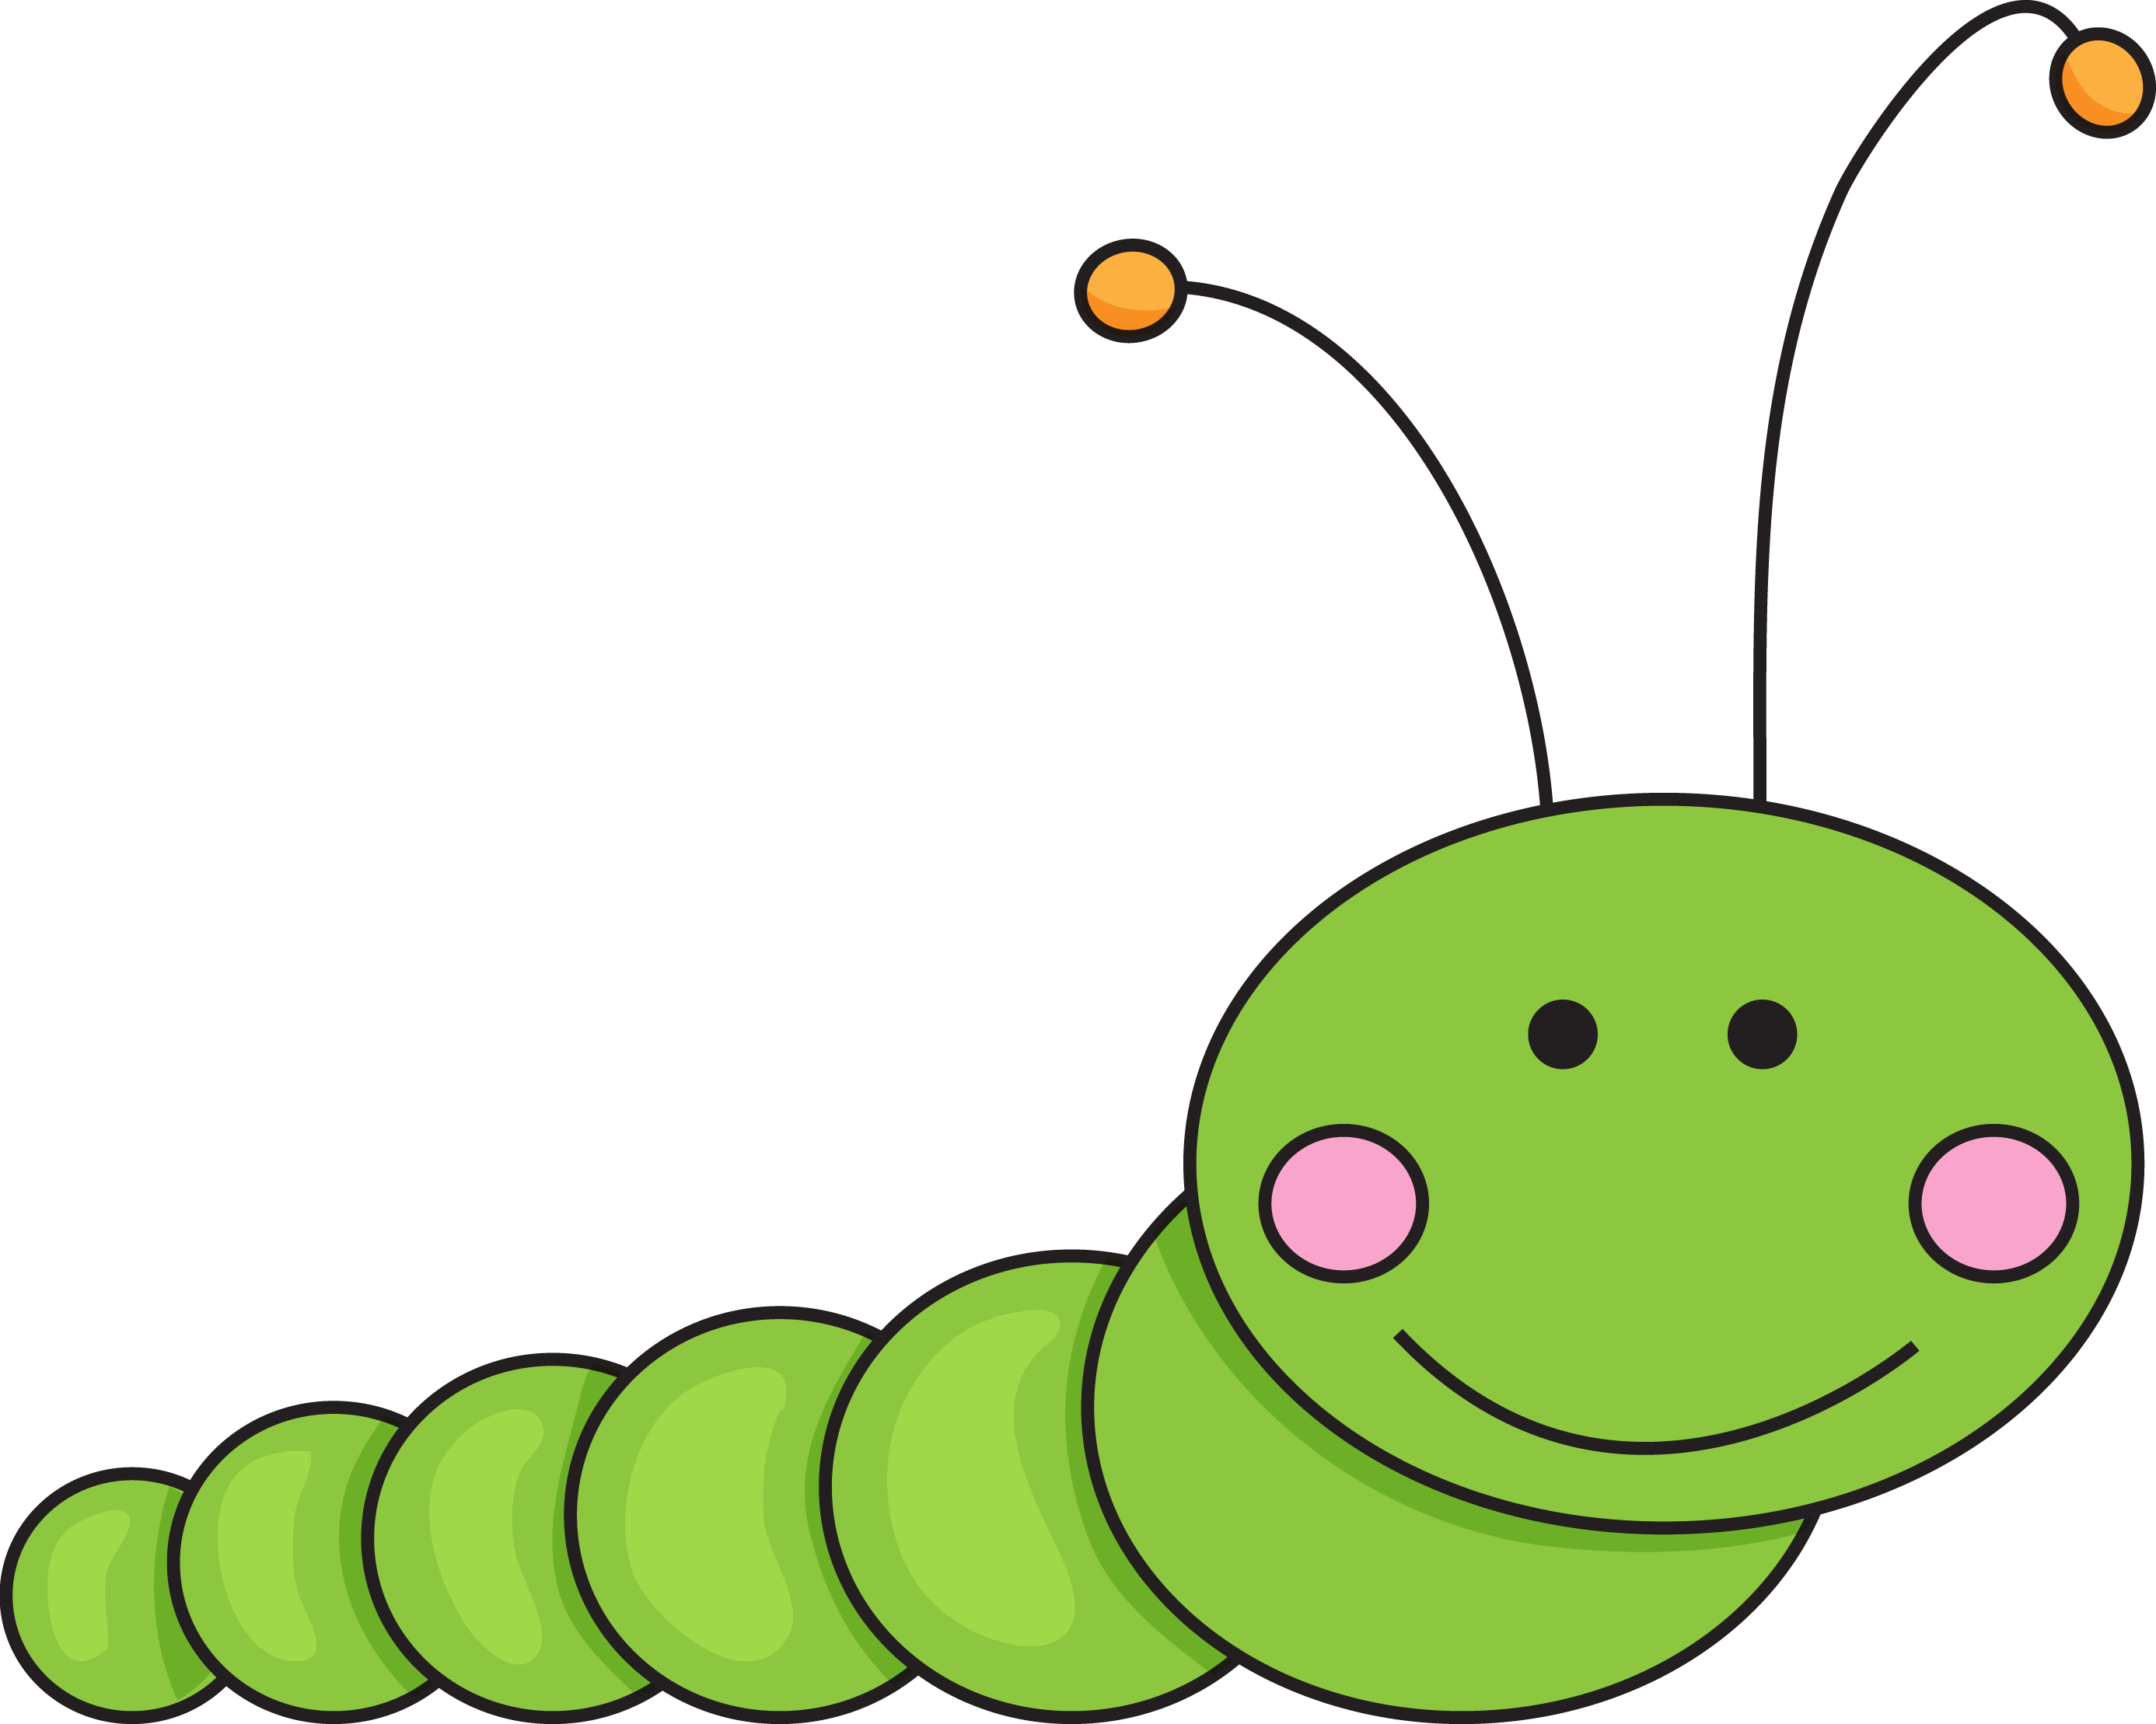 Caterpillar clipart. At getdrawings com free